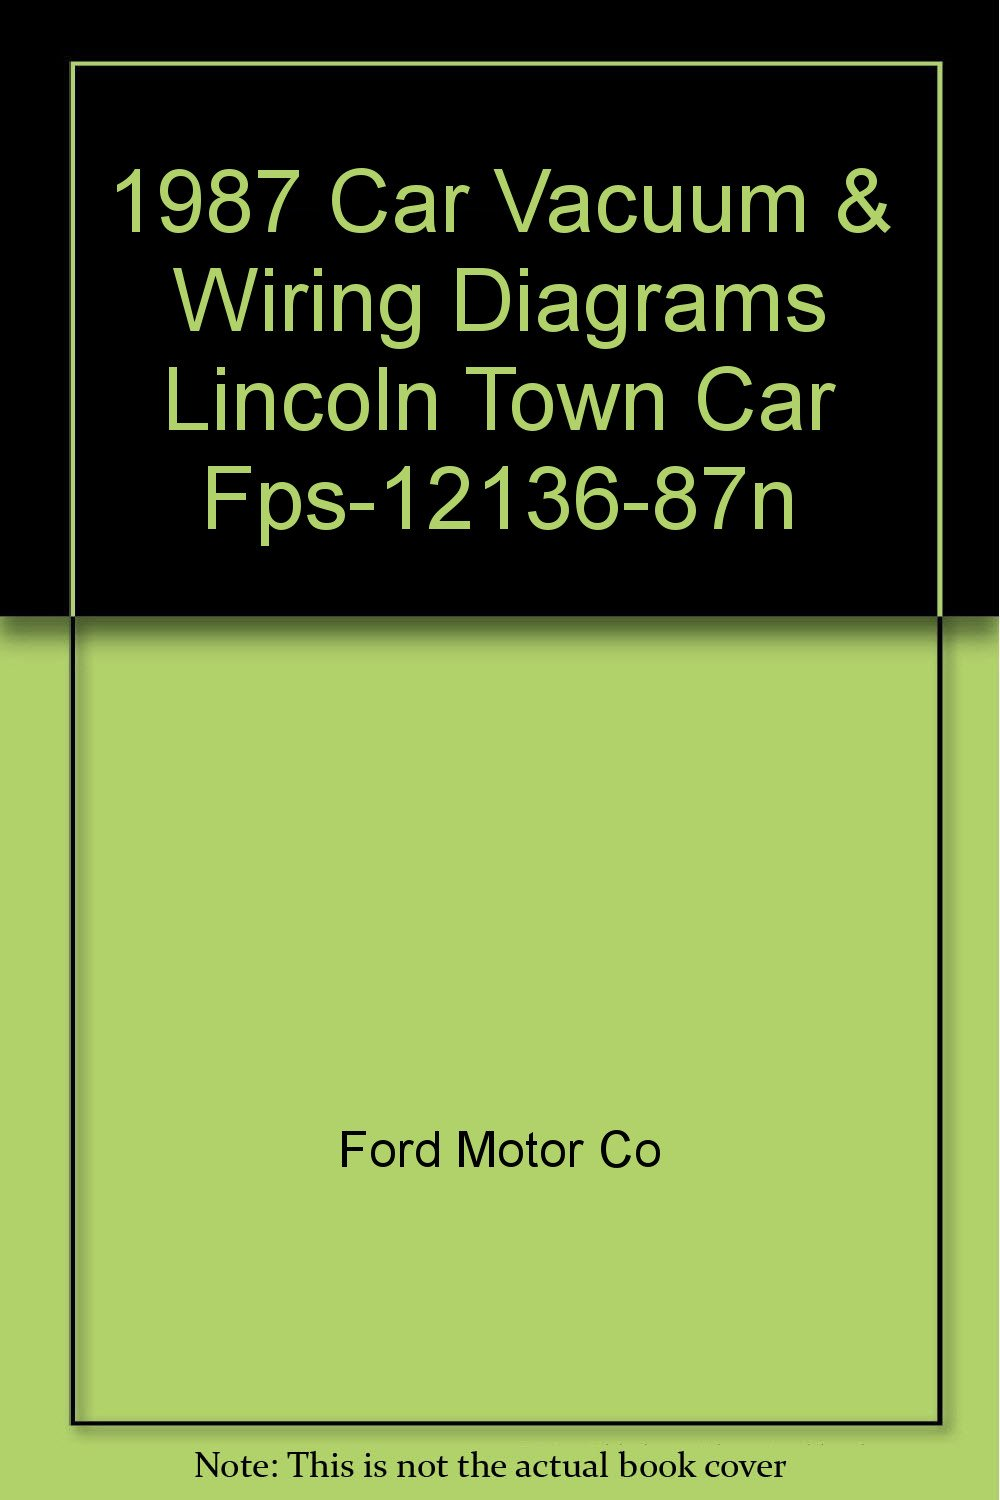 Lincoln Motor Wiring Diagrams 1987 Car Vacuum Town Fps 12136 87n Ford Co Books